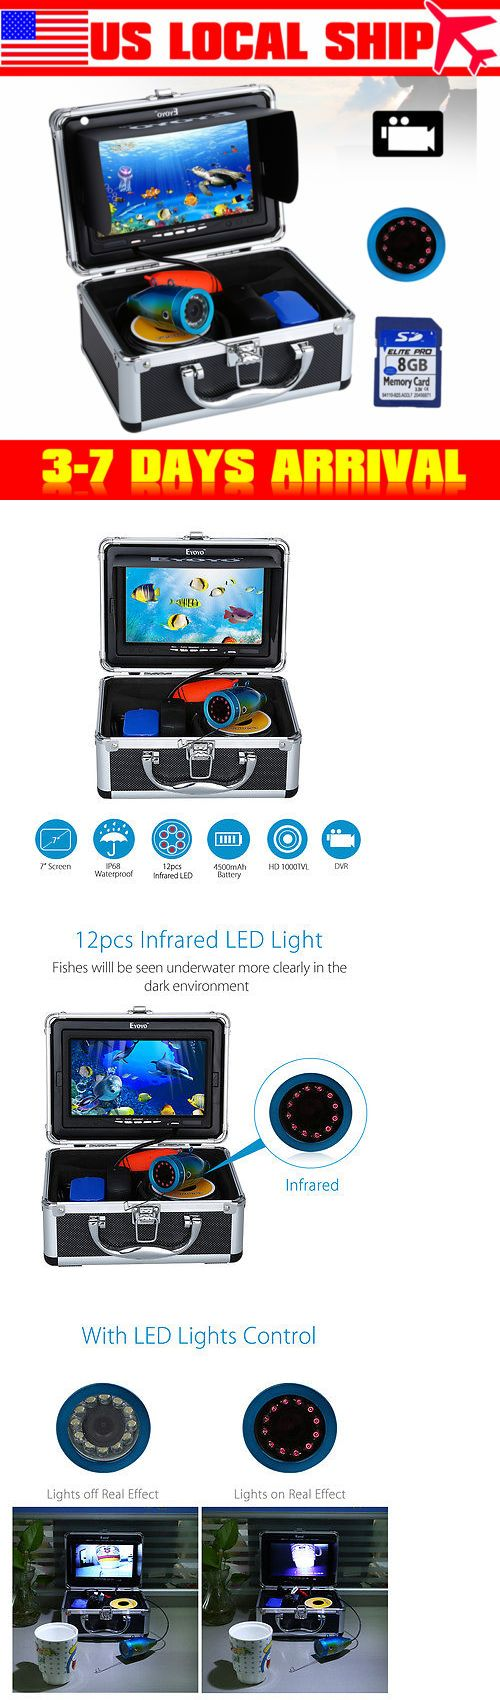 Underwater Cameras 180000: Eyoyo 7 Infrared Underwater Ice Lake Fish Finder Video Camera Dvr+4Gb Card Us! -> BUY IT NOW ONLY: $142.89 on eBay!